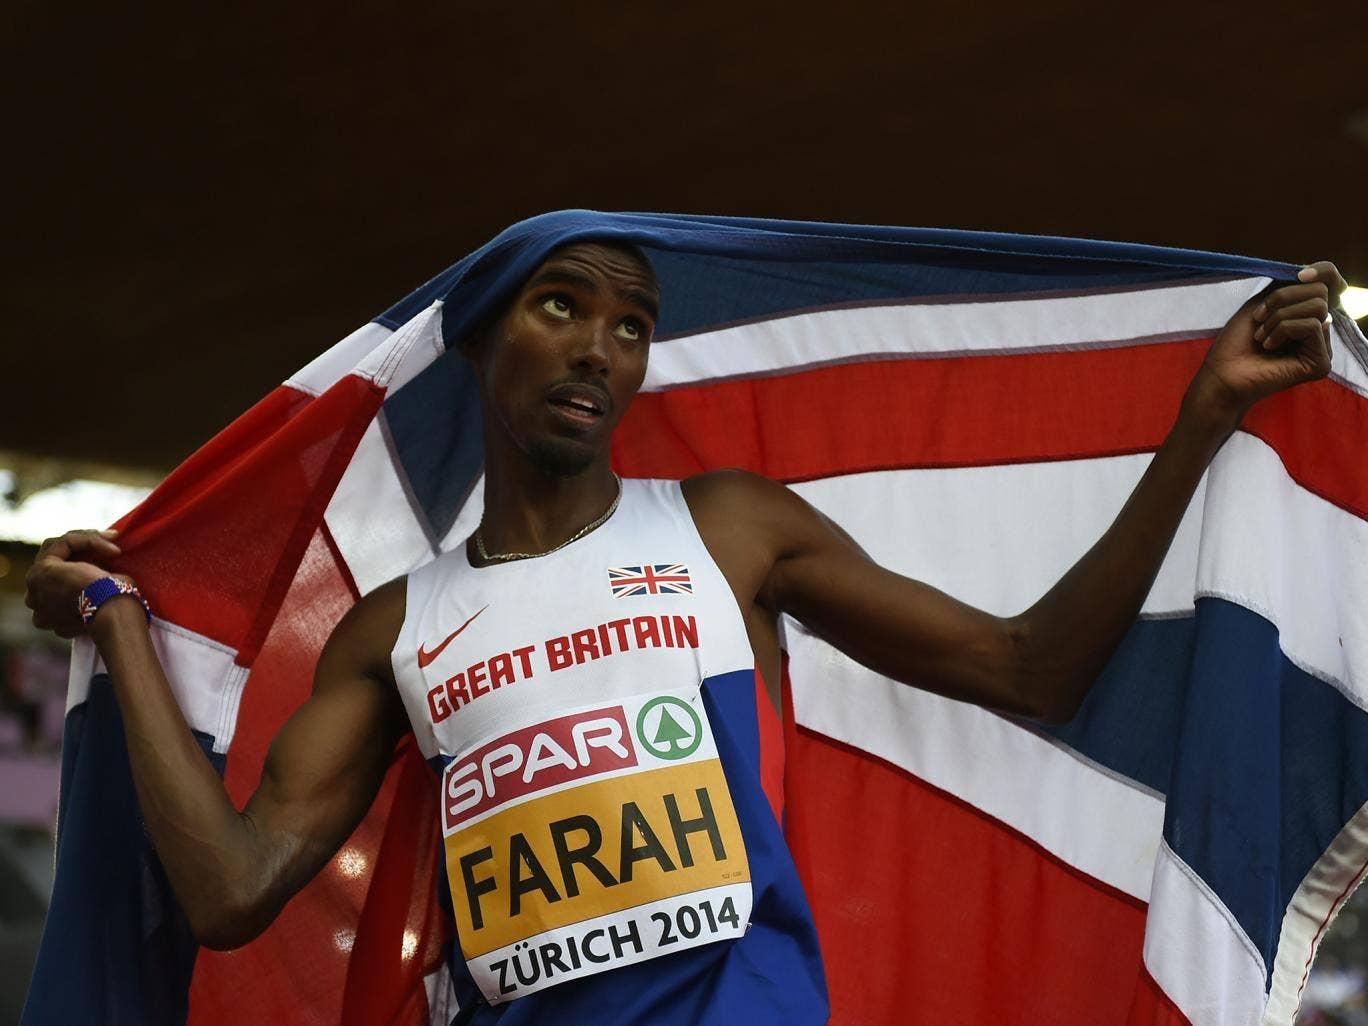 Great Britain's Mohamed Farah, holding his national flag, celebrates after winning the Men's 5000m final